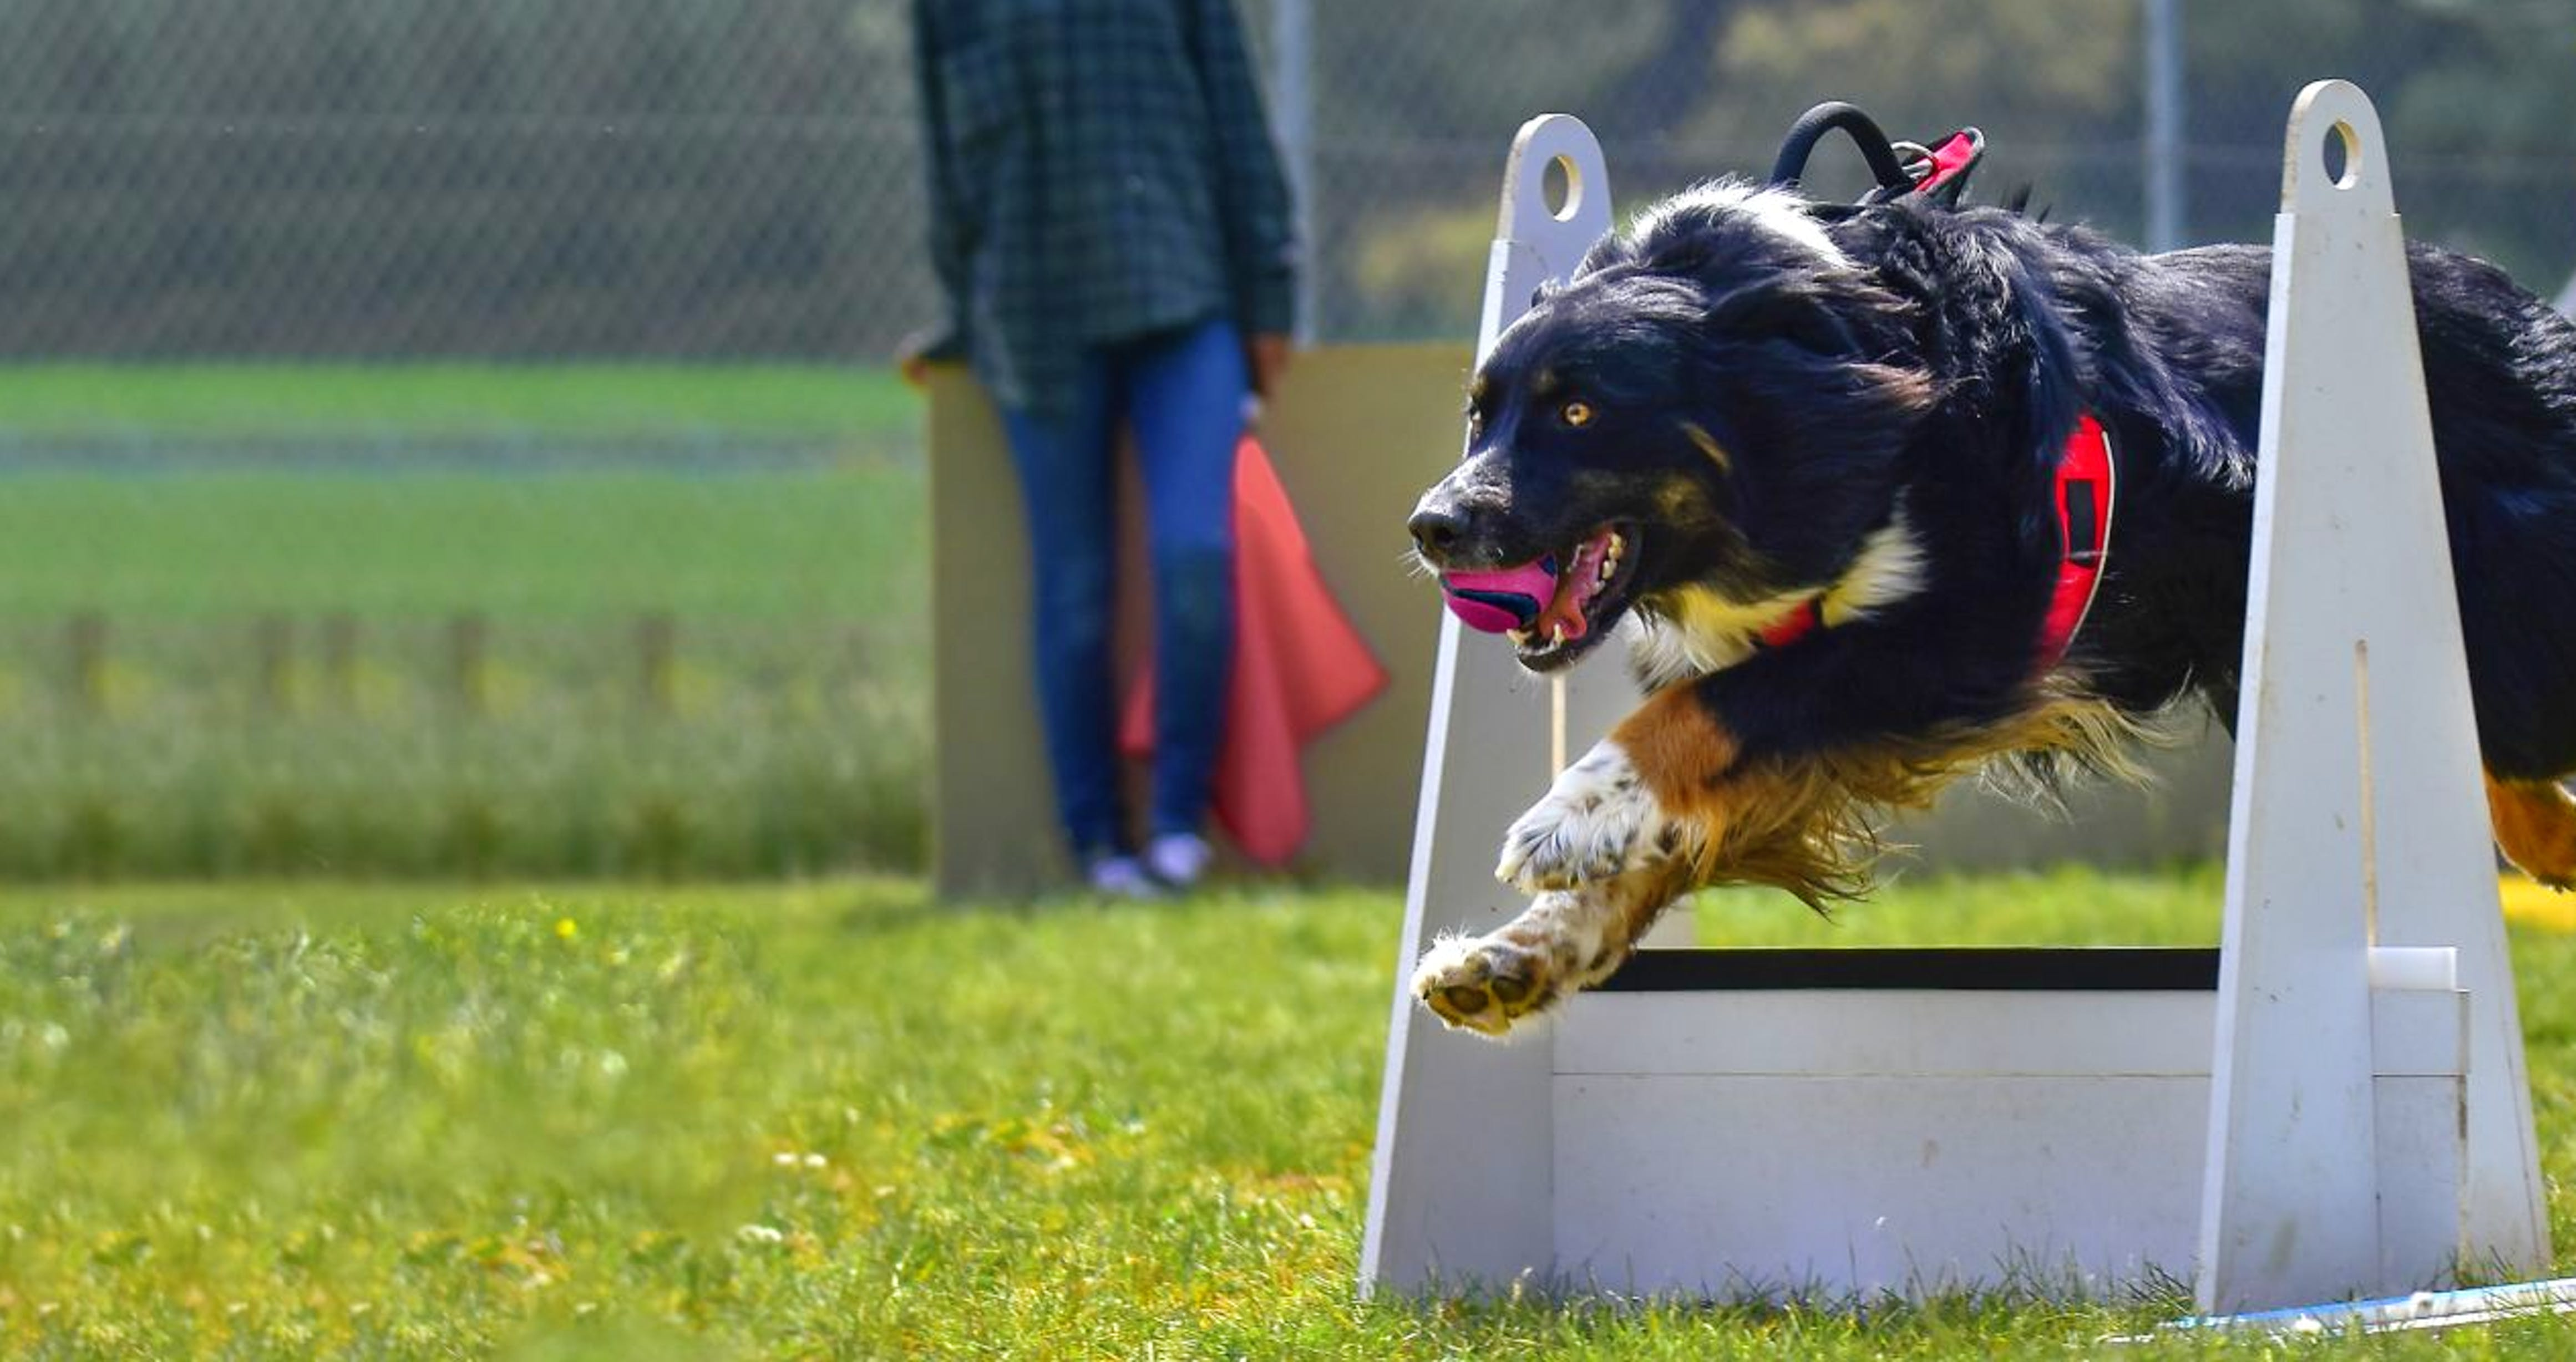 Burmese Mountain Dog jumping over an obstacle during a flyball competition